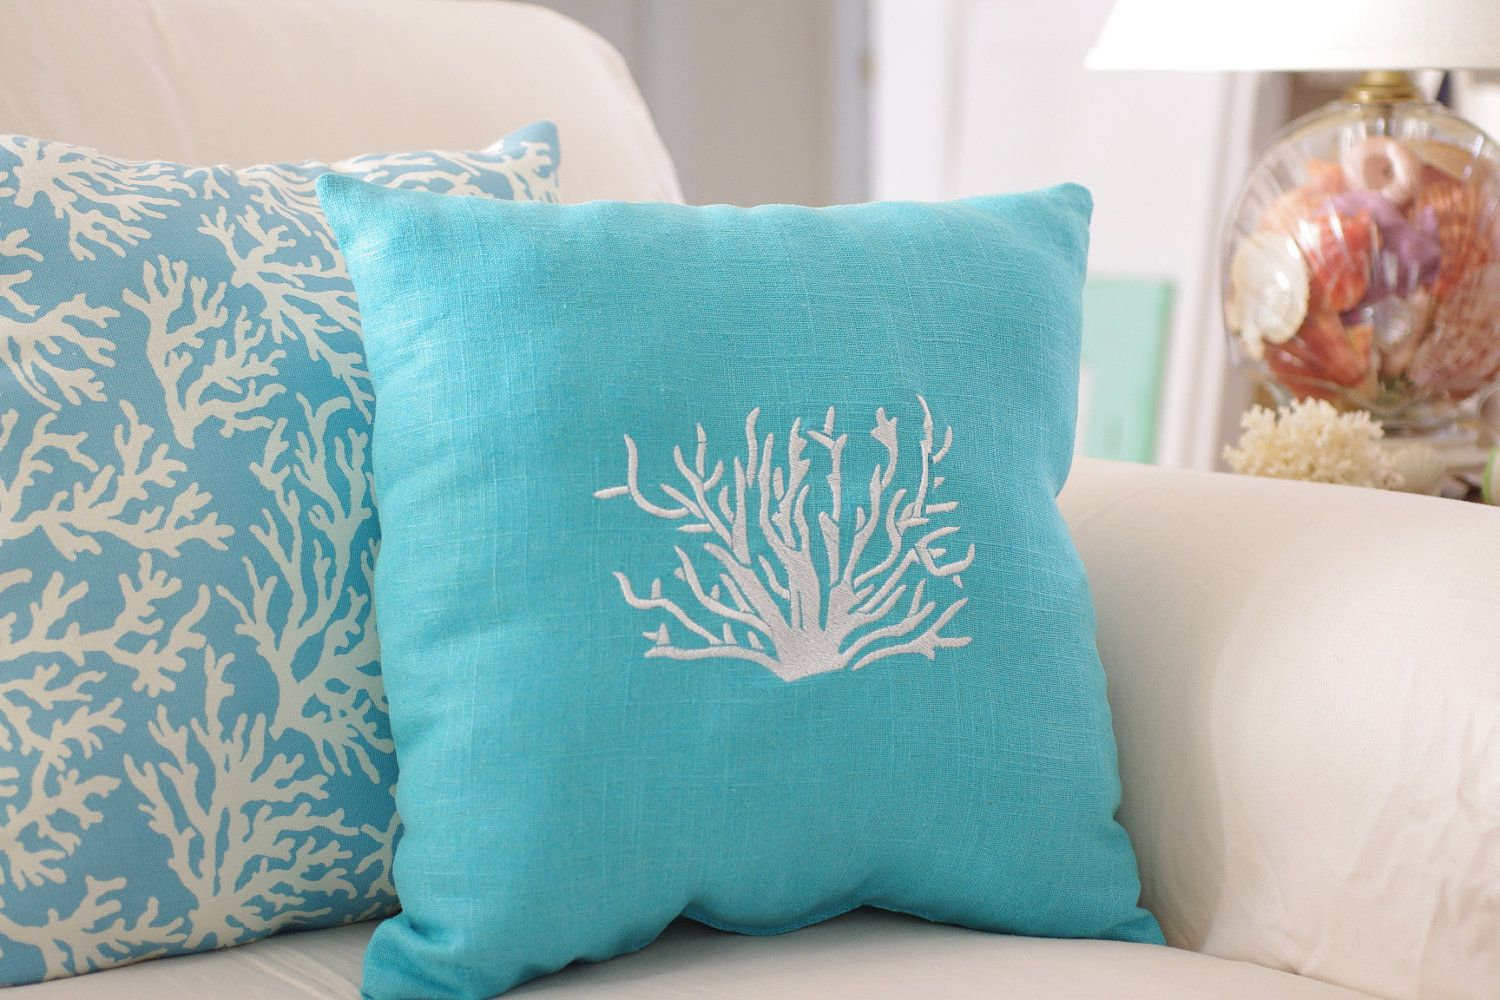 turq pillows pillow diy outside doodles stitches beach